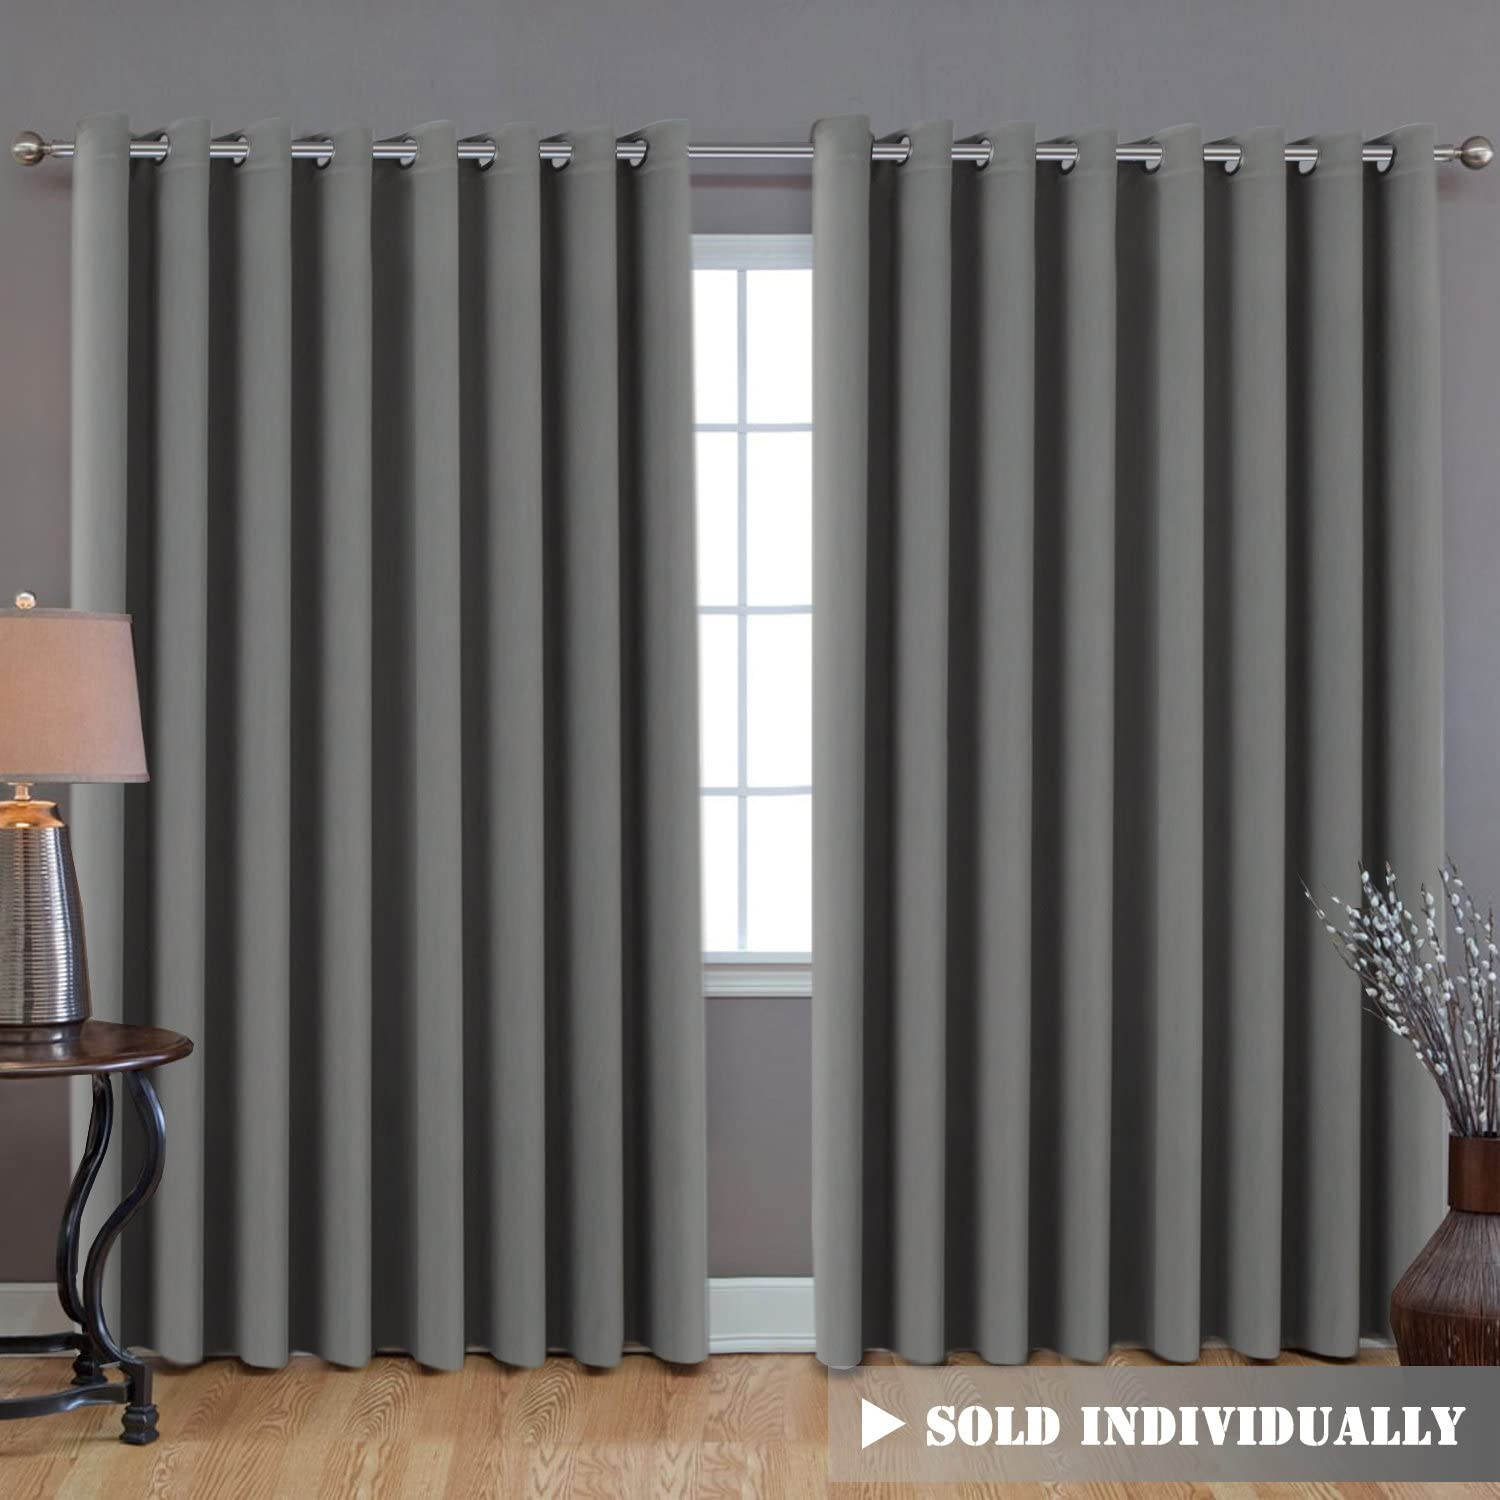 "H.VERSAILTEX Blackout Patio Grey Curtains, Extra Long and Wider (100"" W by 108"" L) Thermal Insulated Panel Premium Room Divider, No One Can See Through (9' Tall by 8.5' Wide) - Dove Grey"